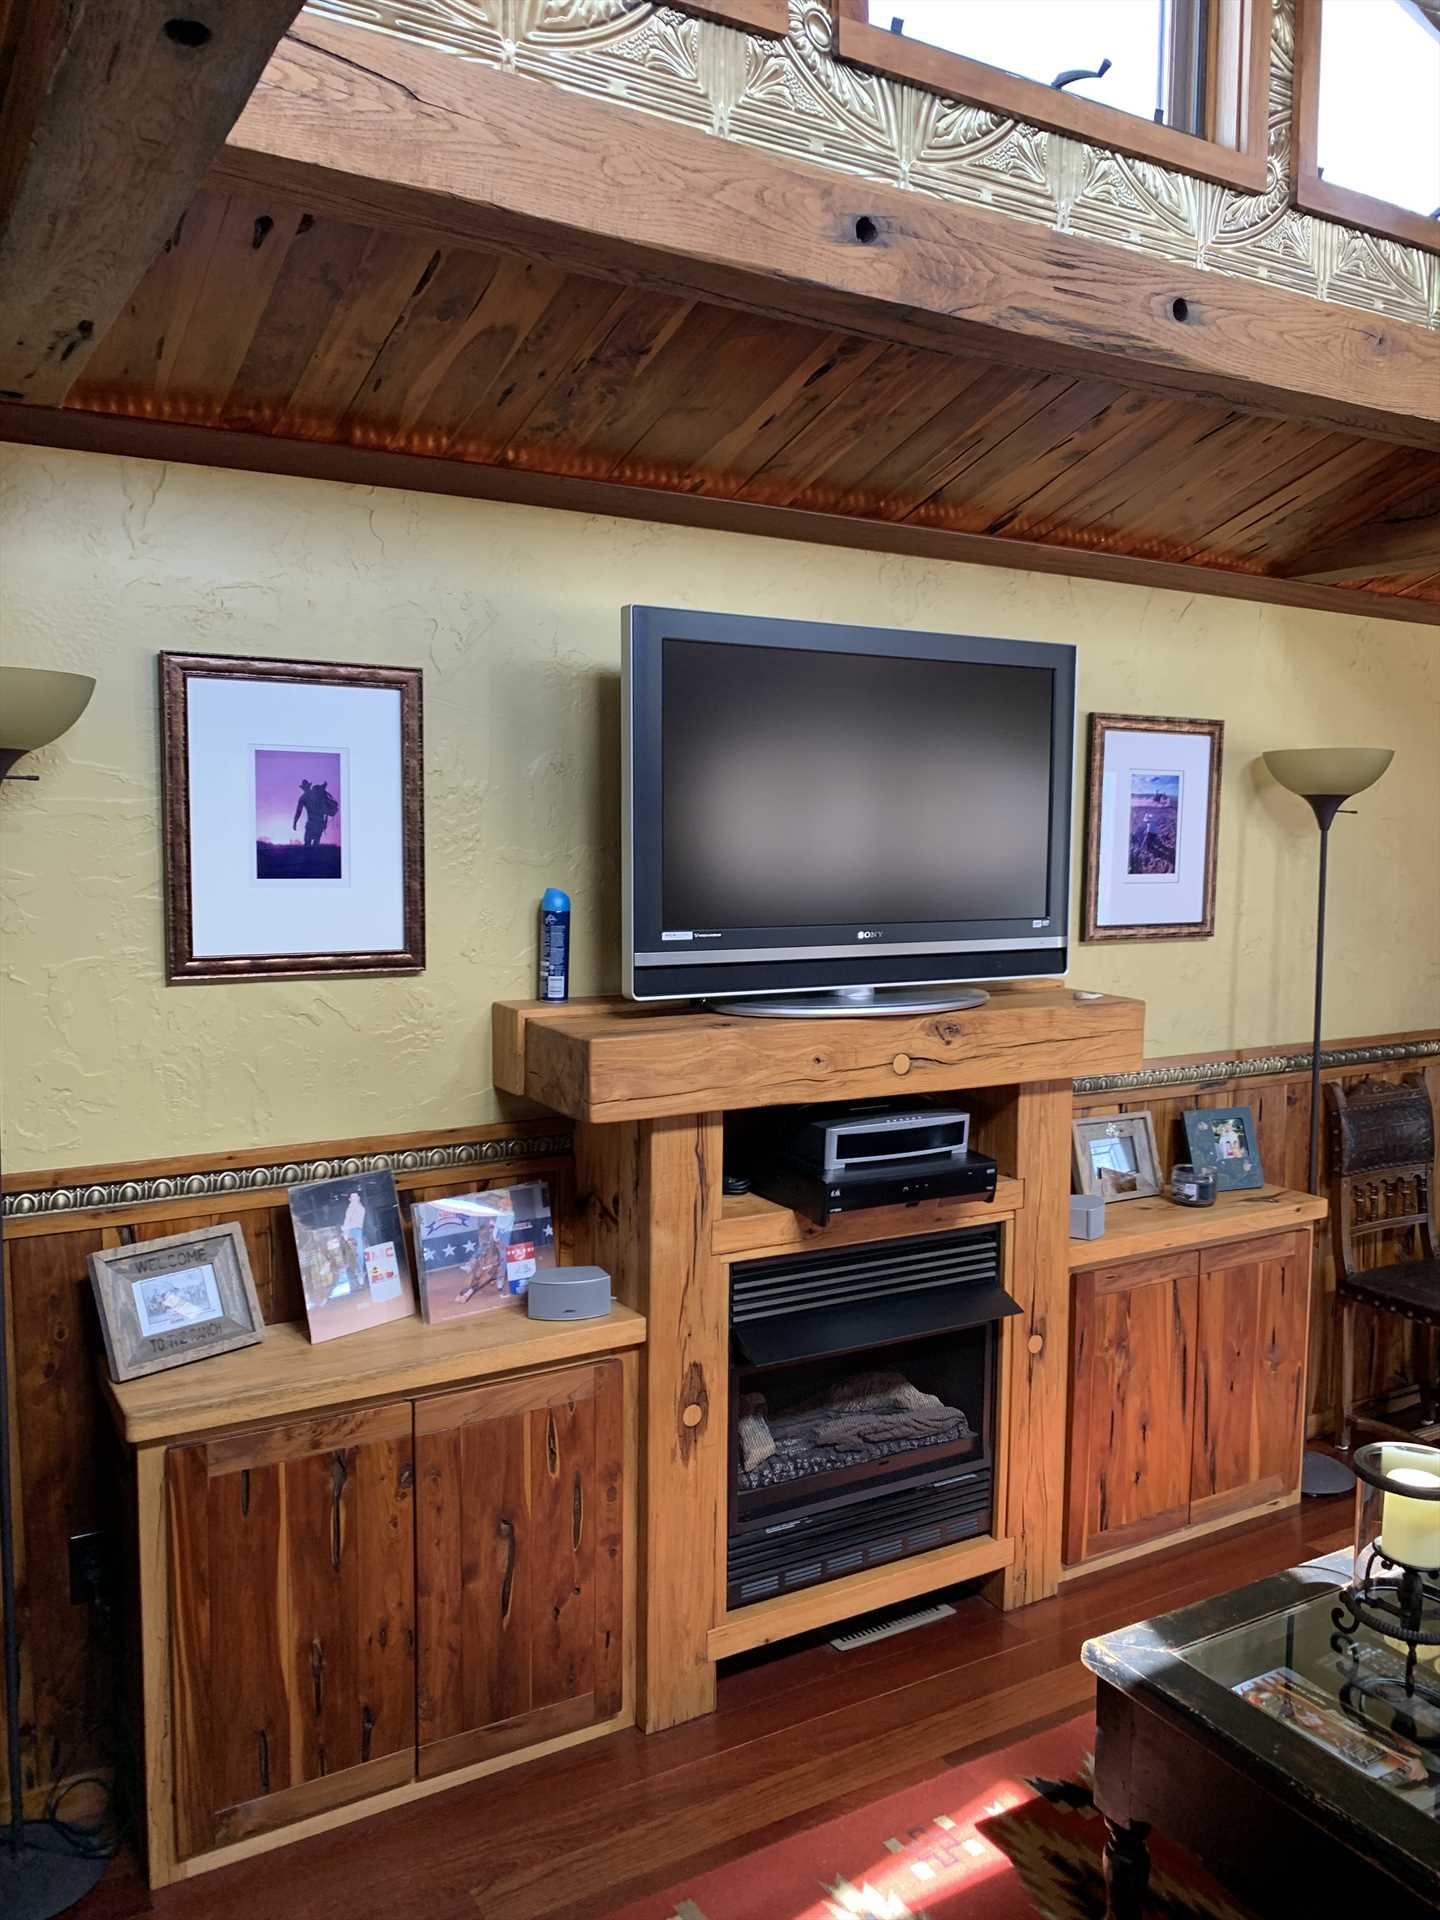 Cable and satellite TV and a DVD player are on hand for intimate movie nights, and there's also shared Wifi service on the ranch.